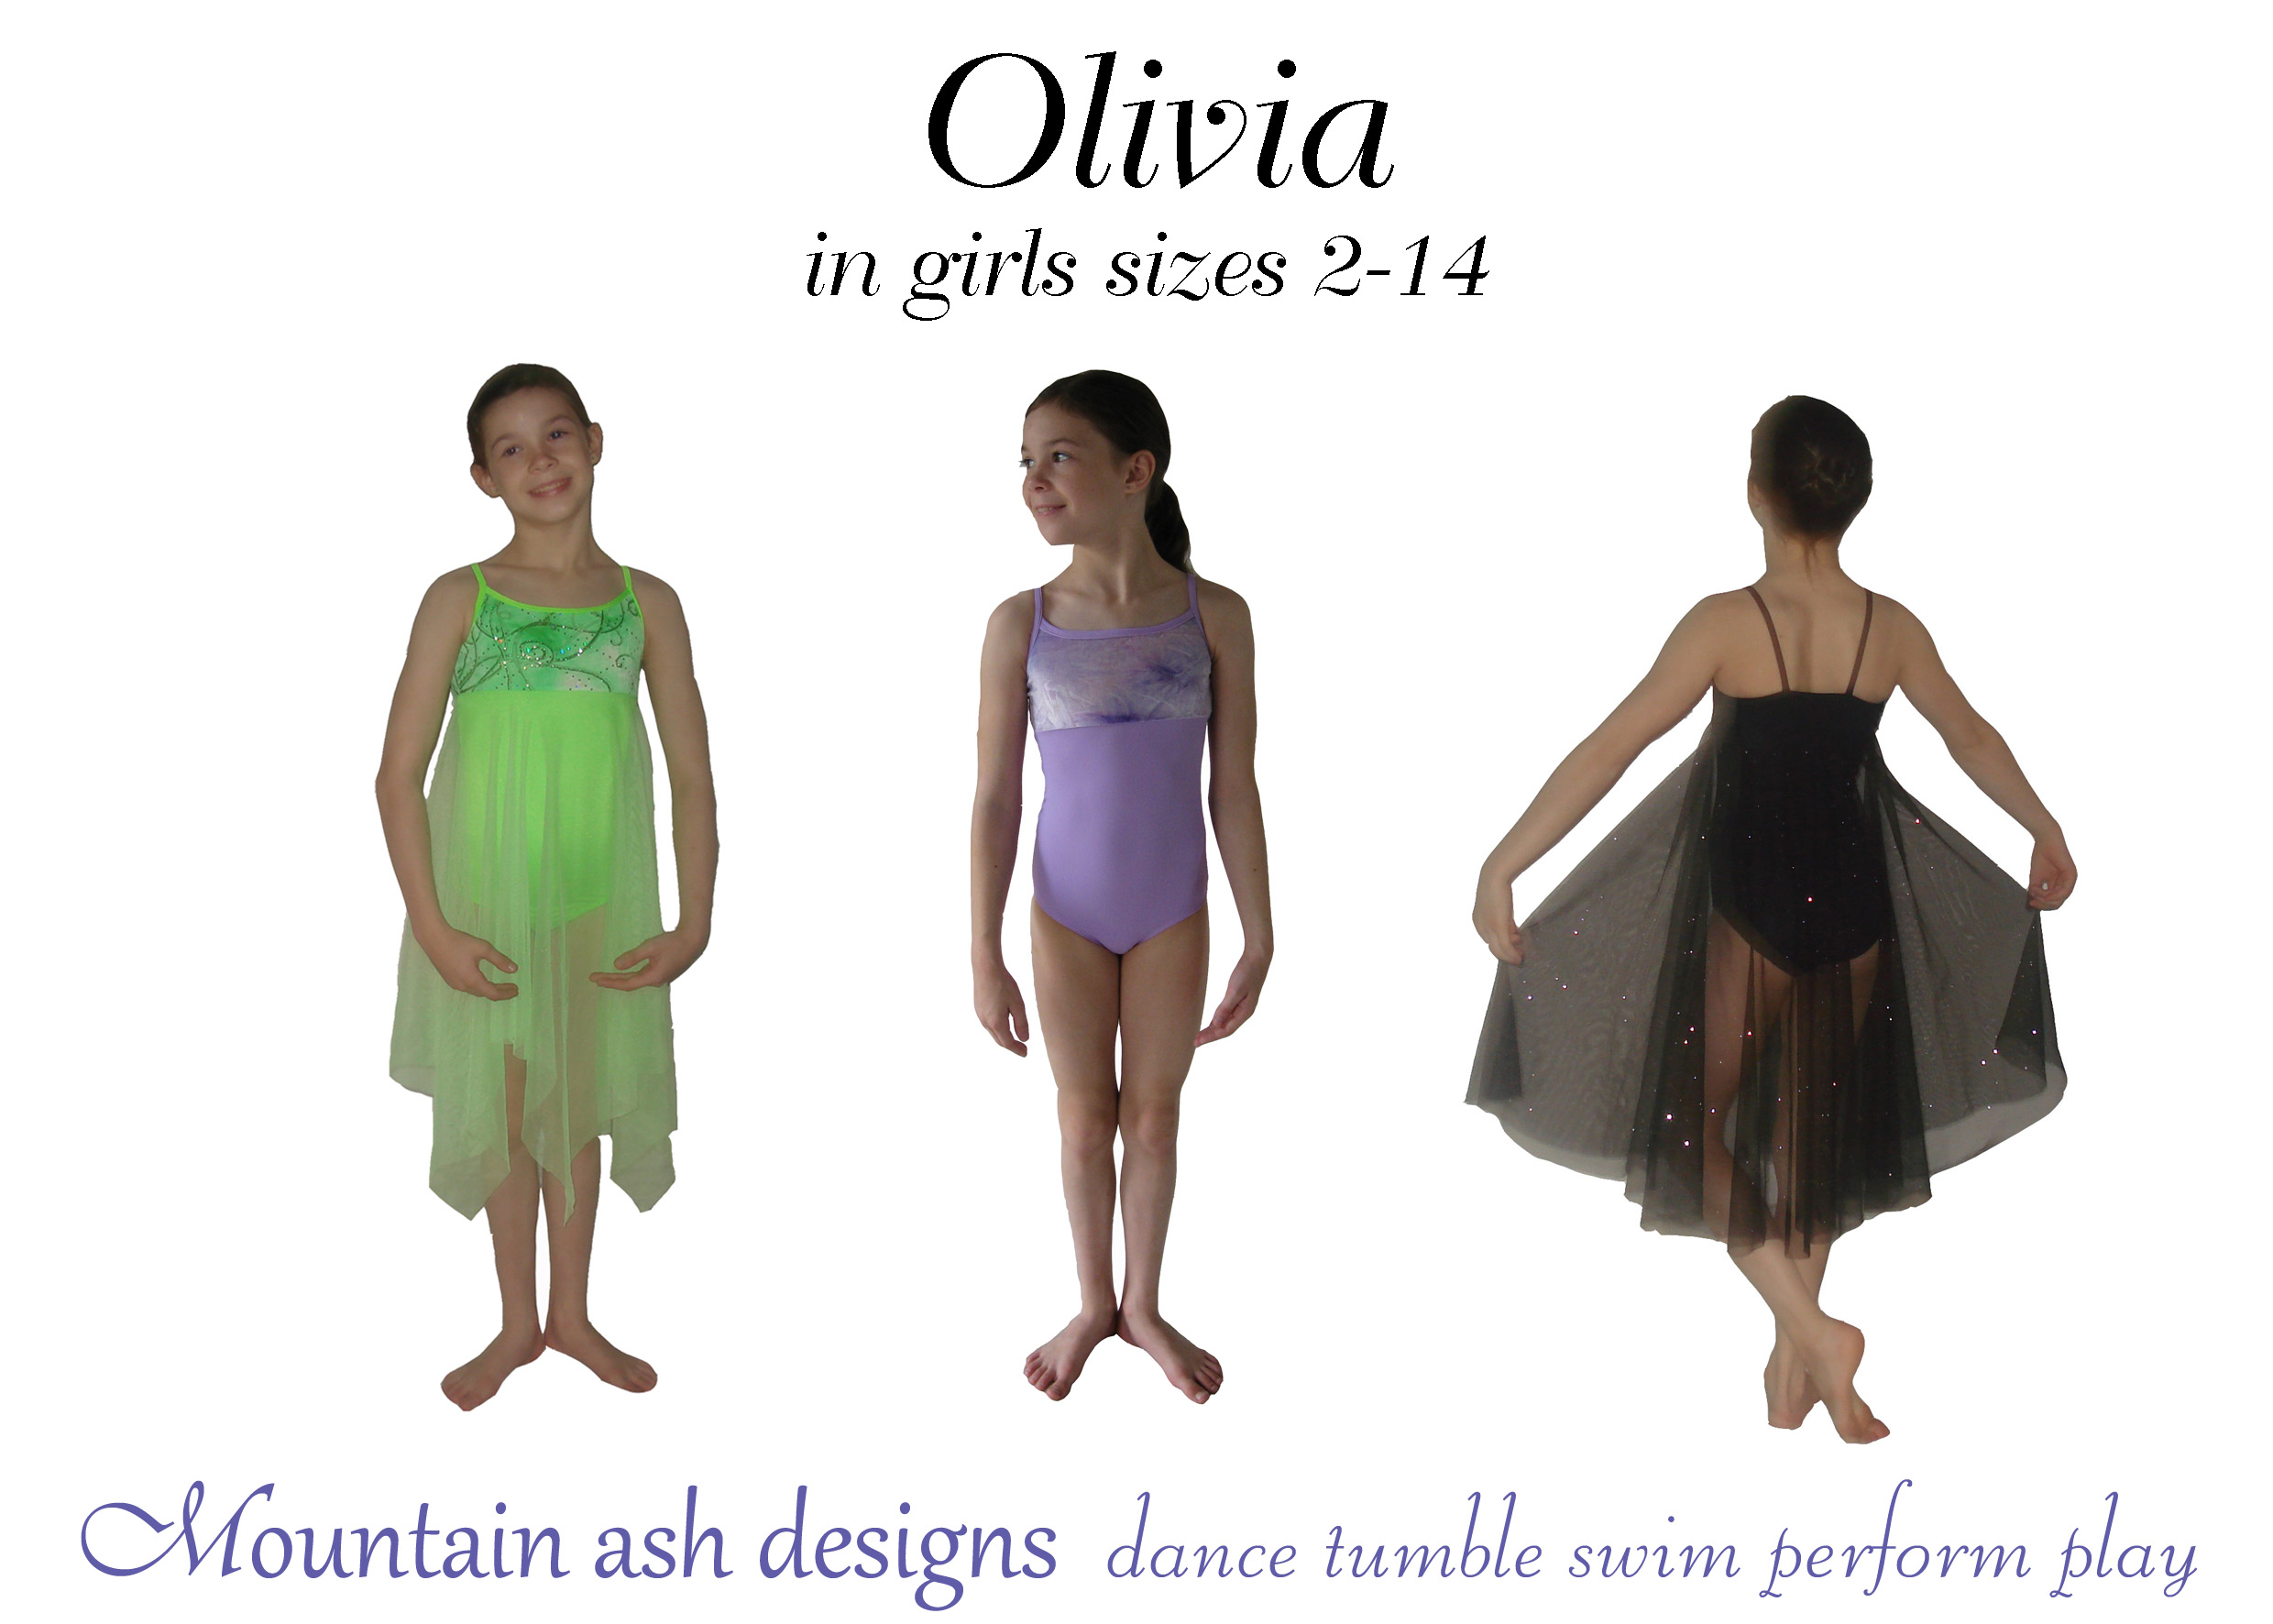 Olivia Ballet Costume and Leotard Sewing Pattern in Girls Sizes 2-14